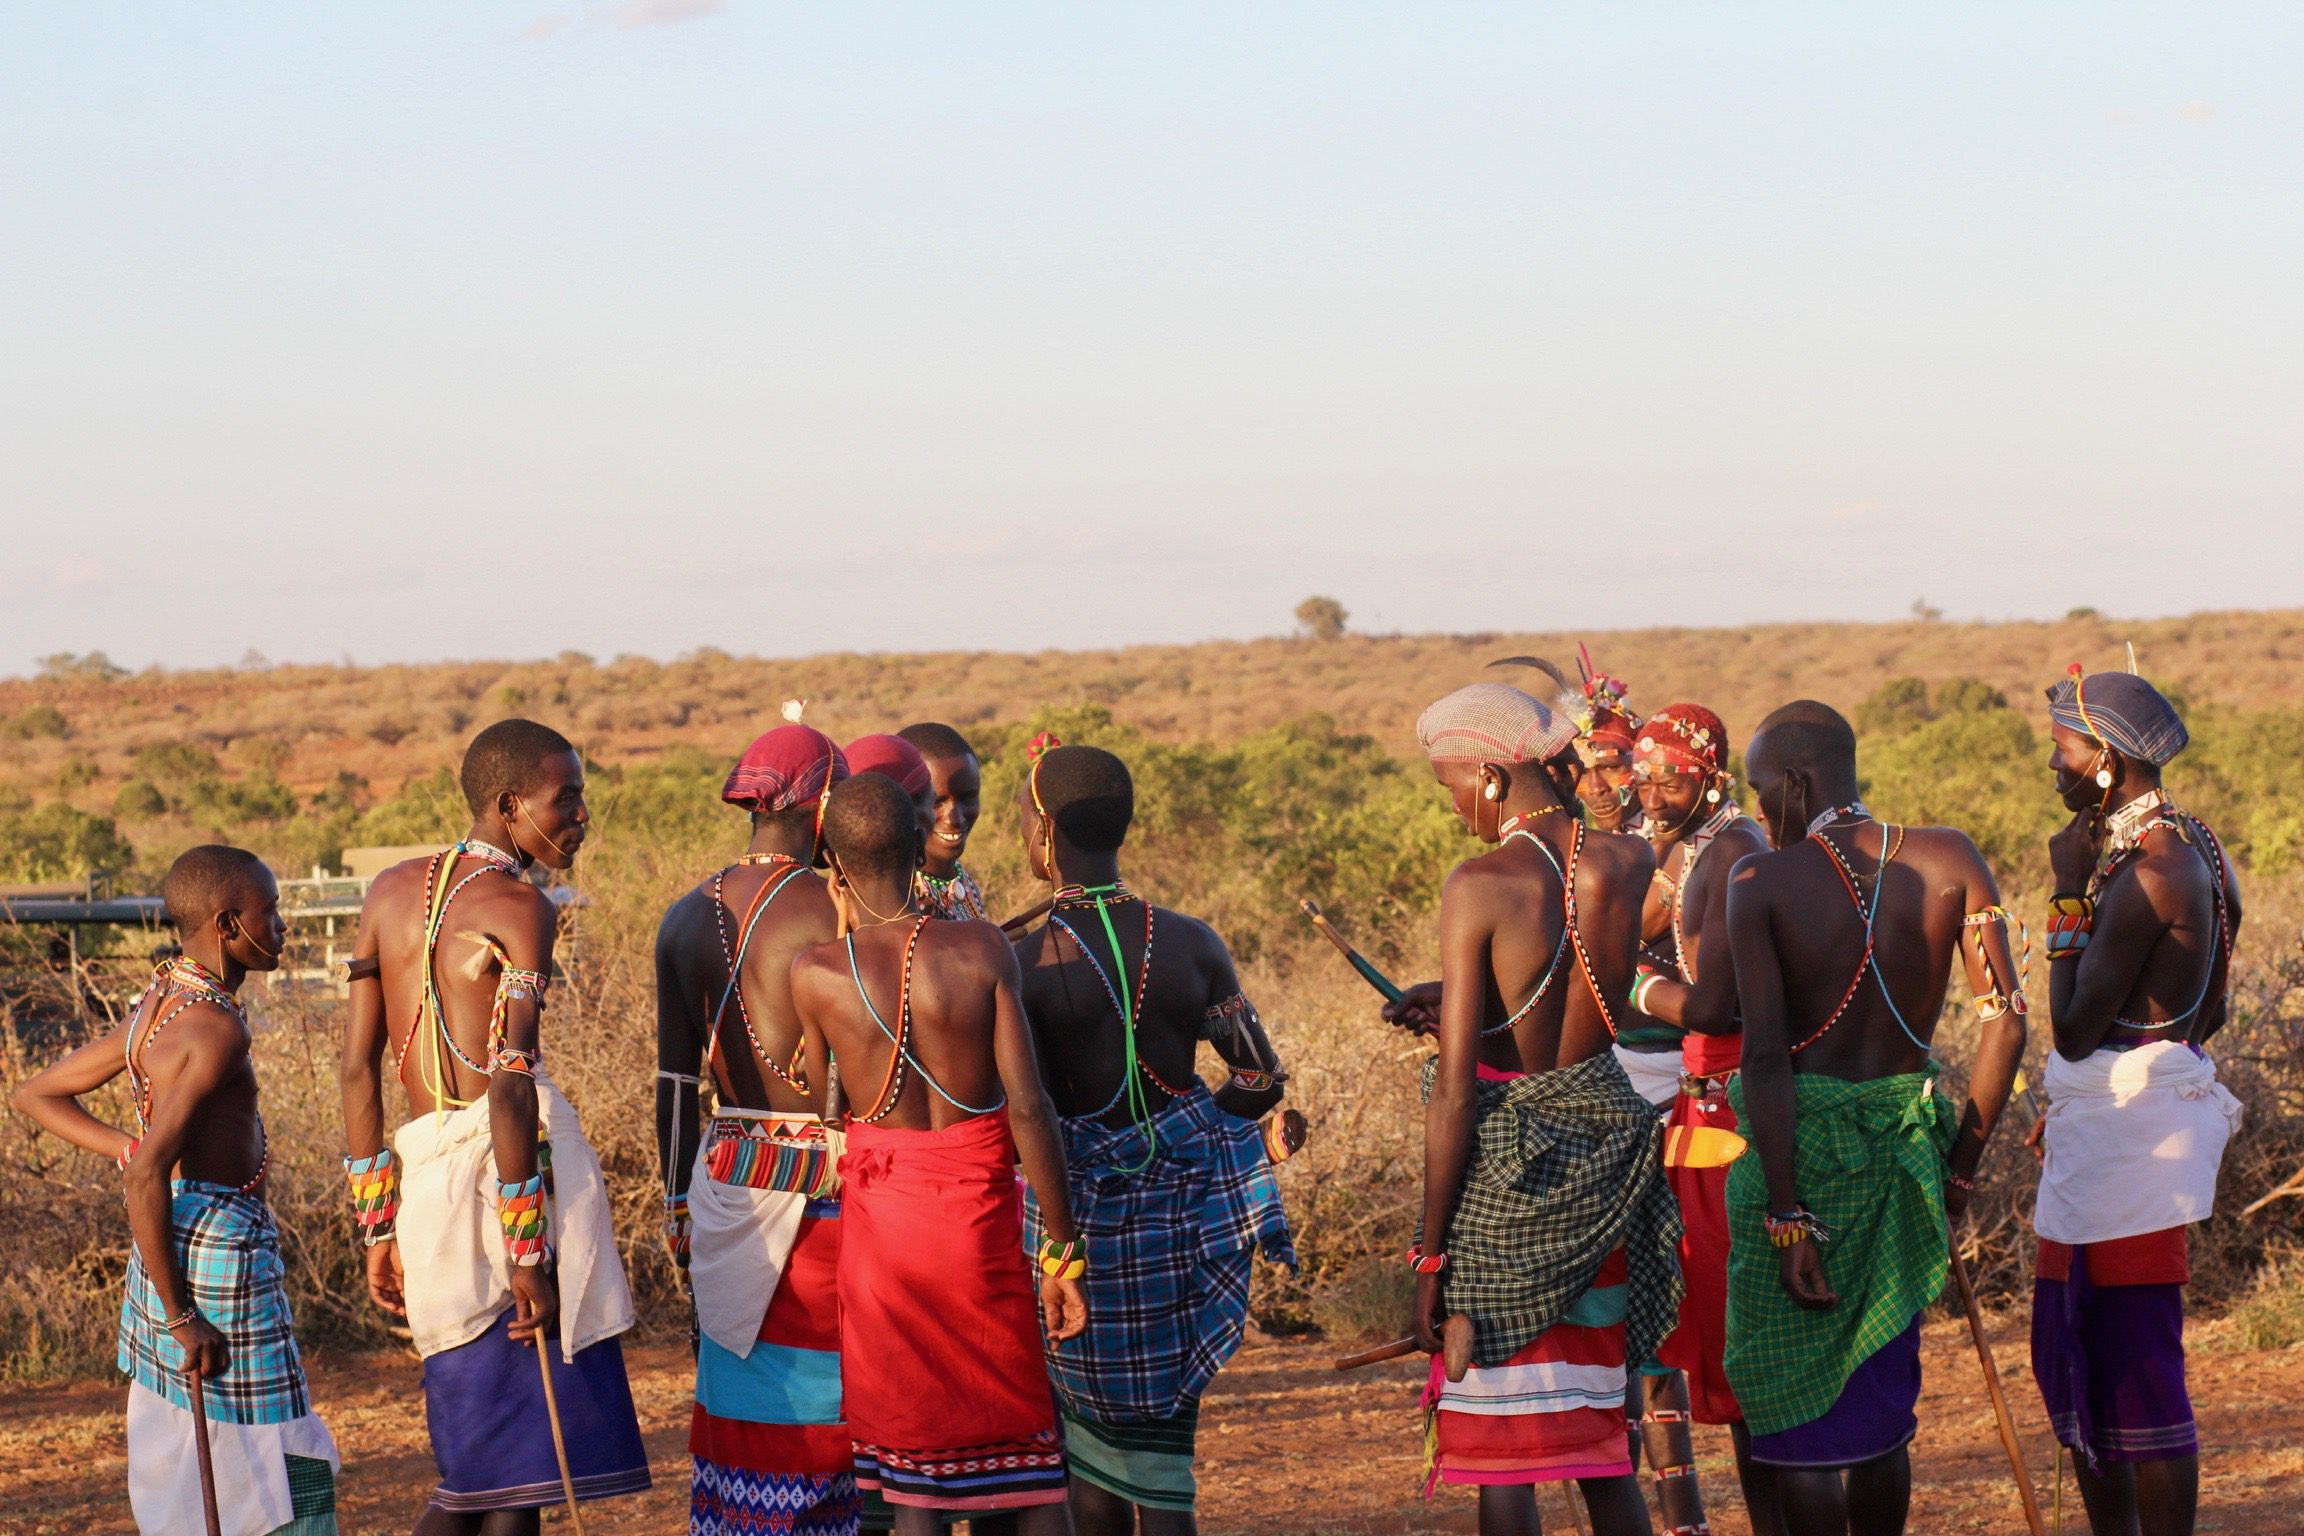 a crowd of Samburu men look out into the landscape while talking among themselves